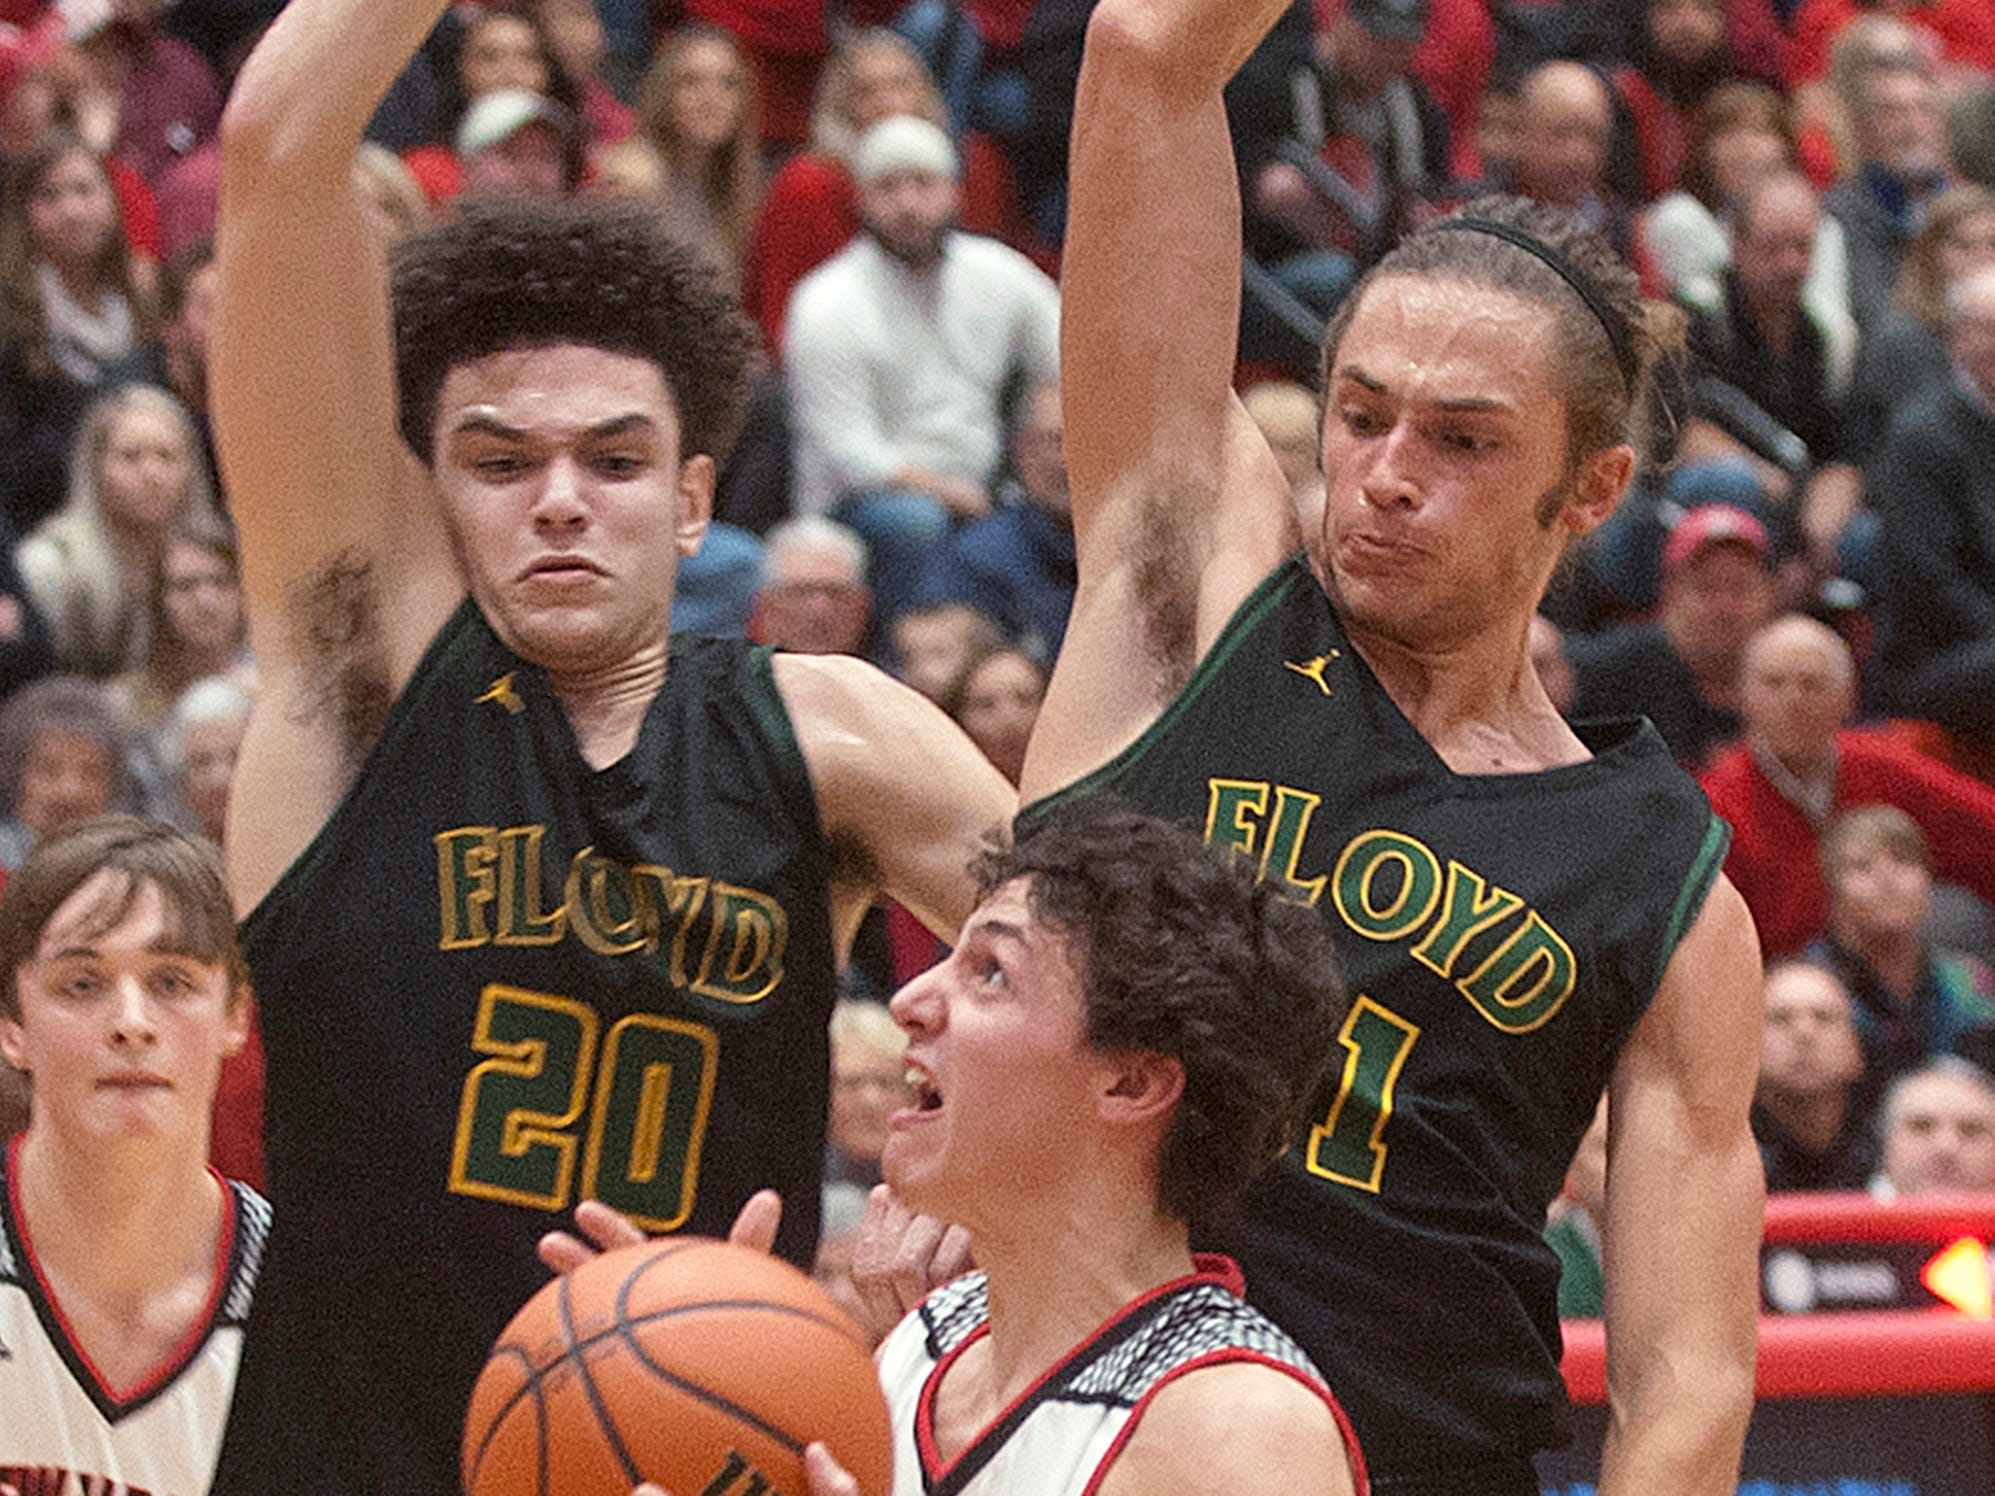 Floyd Central guard Gabe Cora, top left, and Floyd Central forward Cam Sturgeon, top right, try to stop the drive of New Albany guard Landon Sprigler. 07 December 2018